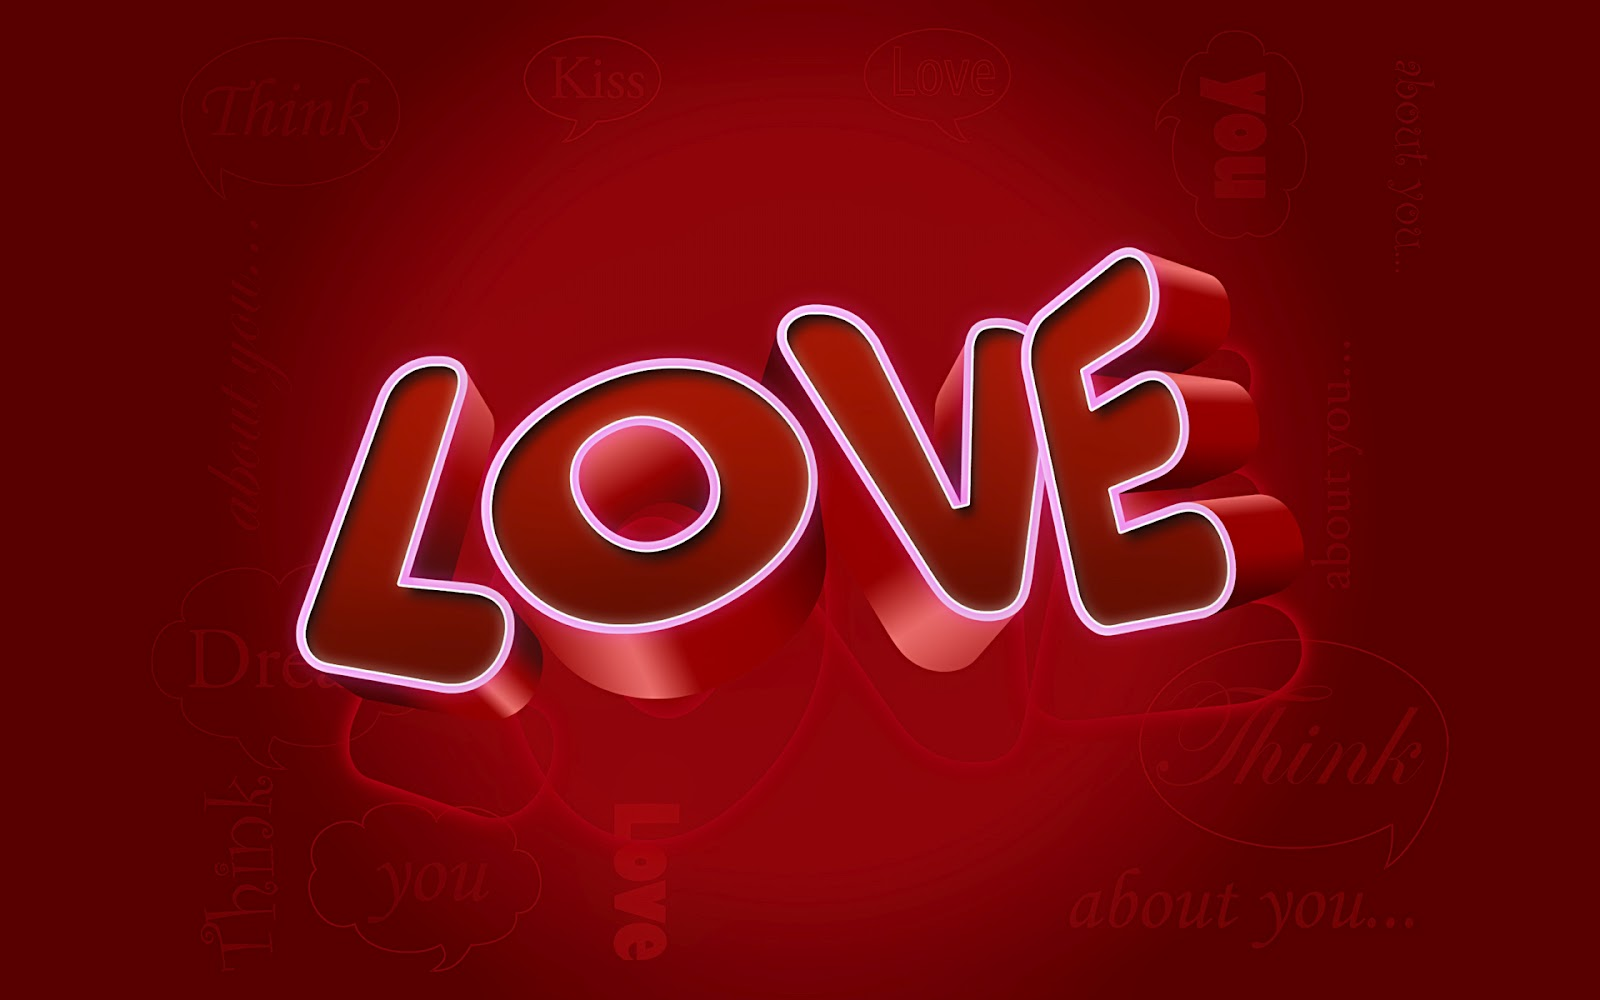 Love Wallpapers Images : Wallpaper Desk : I love you wallpaper, i love you wallpapersWallpaper Desk